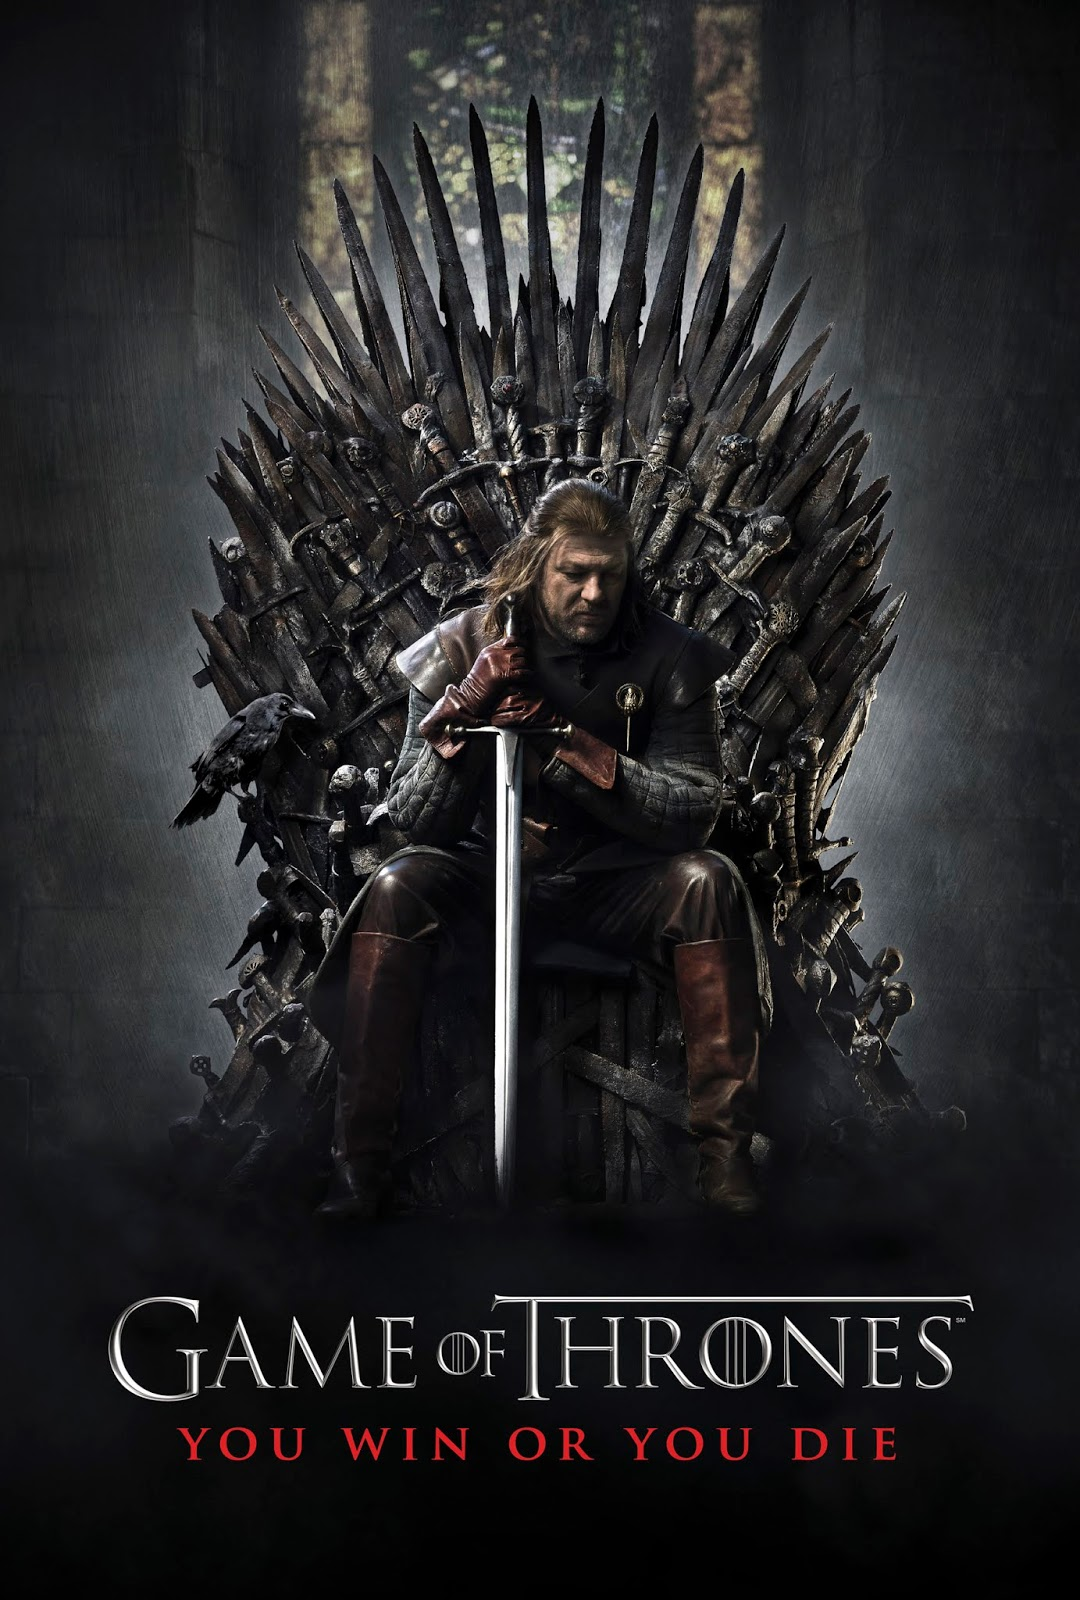 the game of thrones season 1 hindi dubbed download